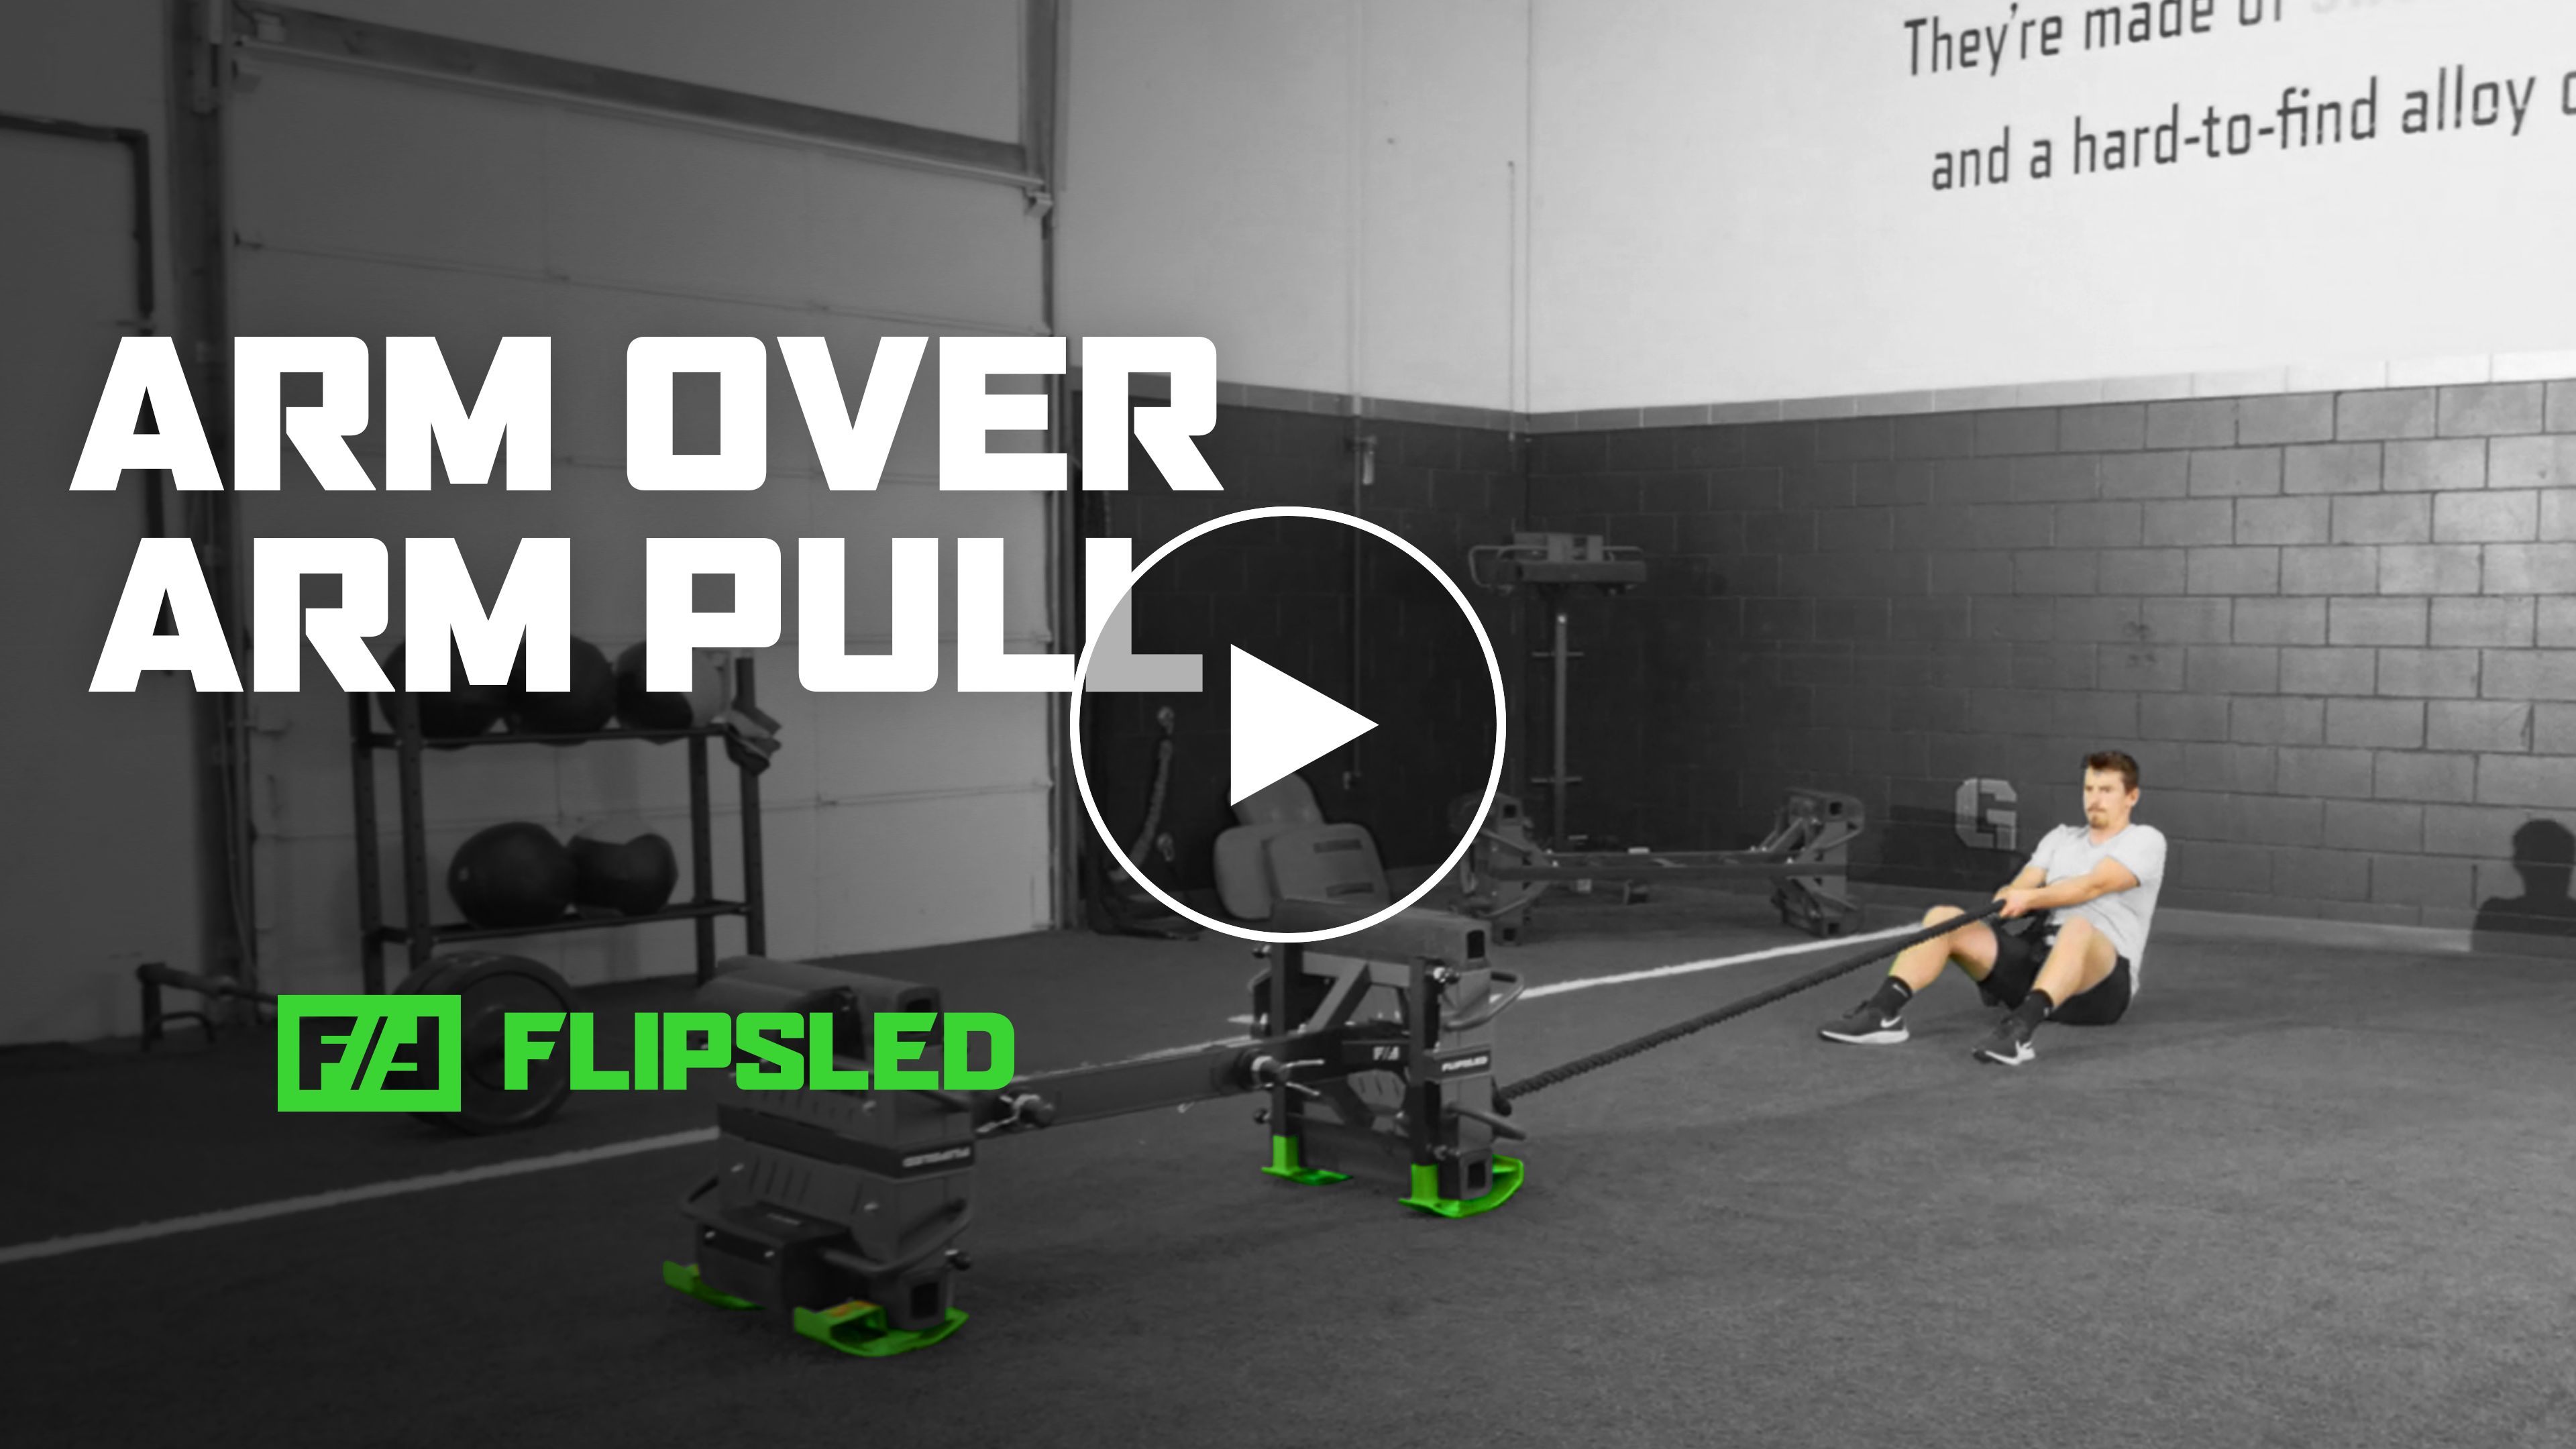 Move of the Week: Arm Over Arm Pull